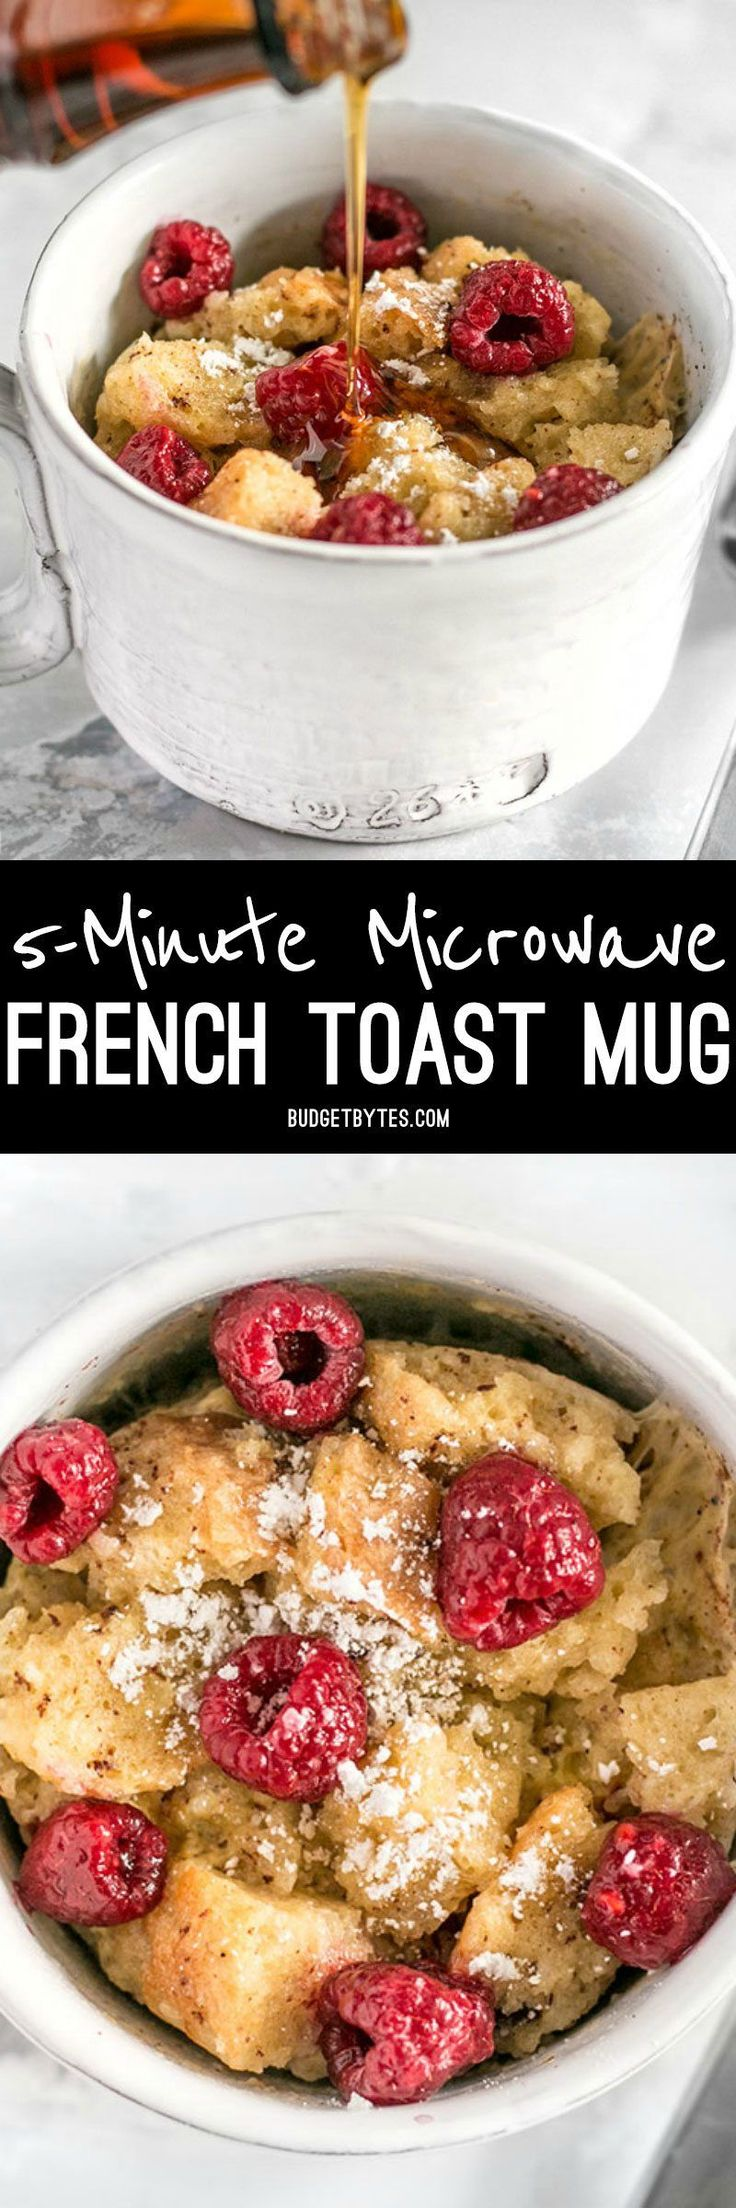 These fast and easy 5-Minute French Toast Mugs are a great single serving breakfast treat plus a way to use leftovers and reduce food waste. BudgetBytes.com